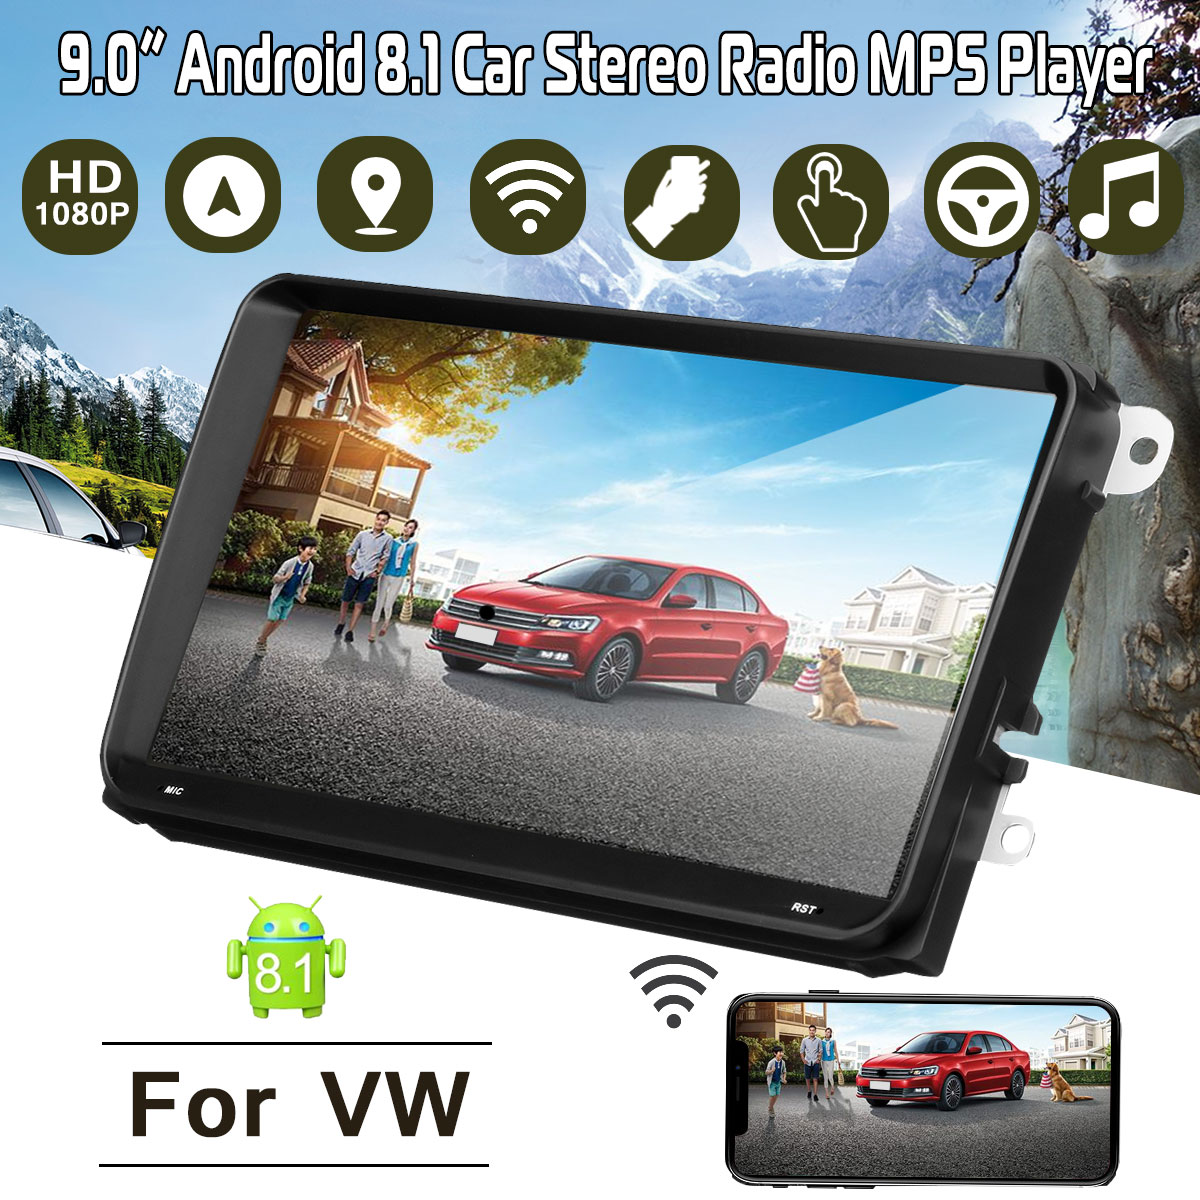 "Car Radio Multimedia 9"" Android 8.1 car dvd audio stereo player Navigation for For VW wifi GPS RDS Stereo Radio MP5 Player"